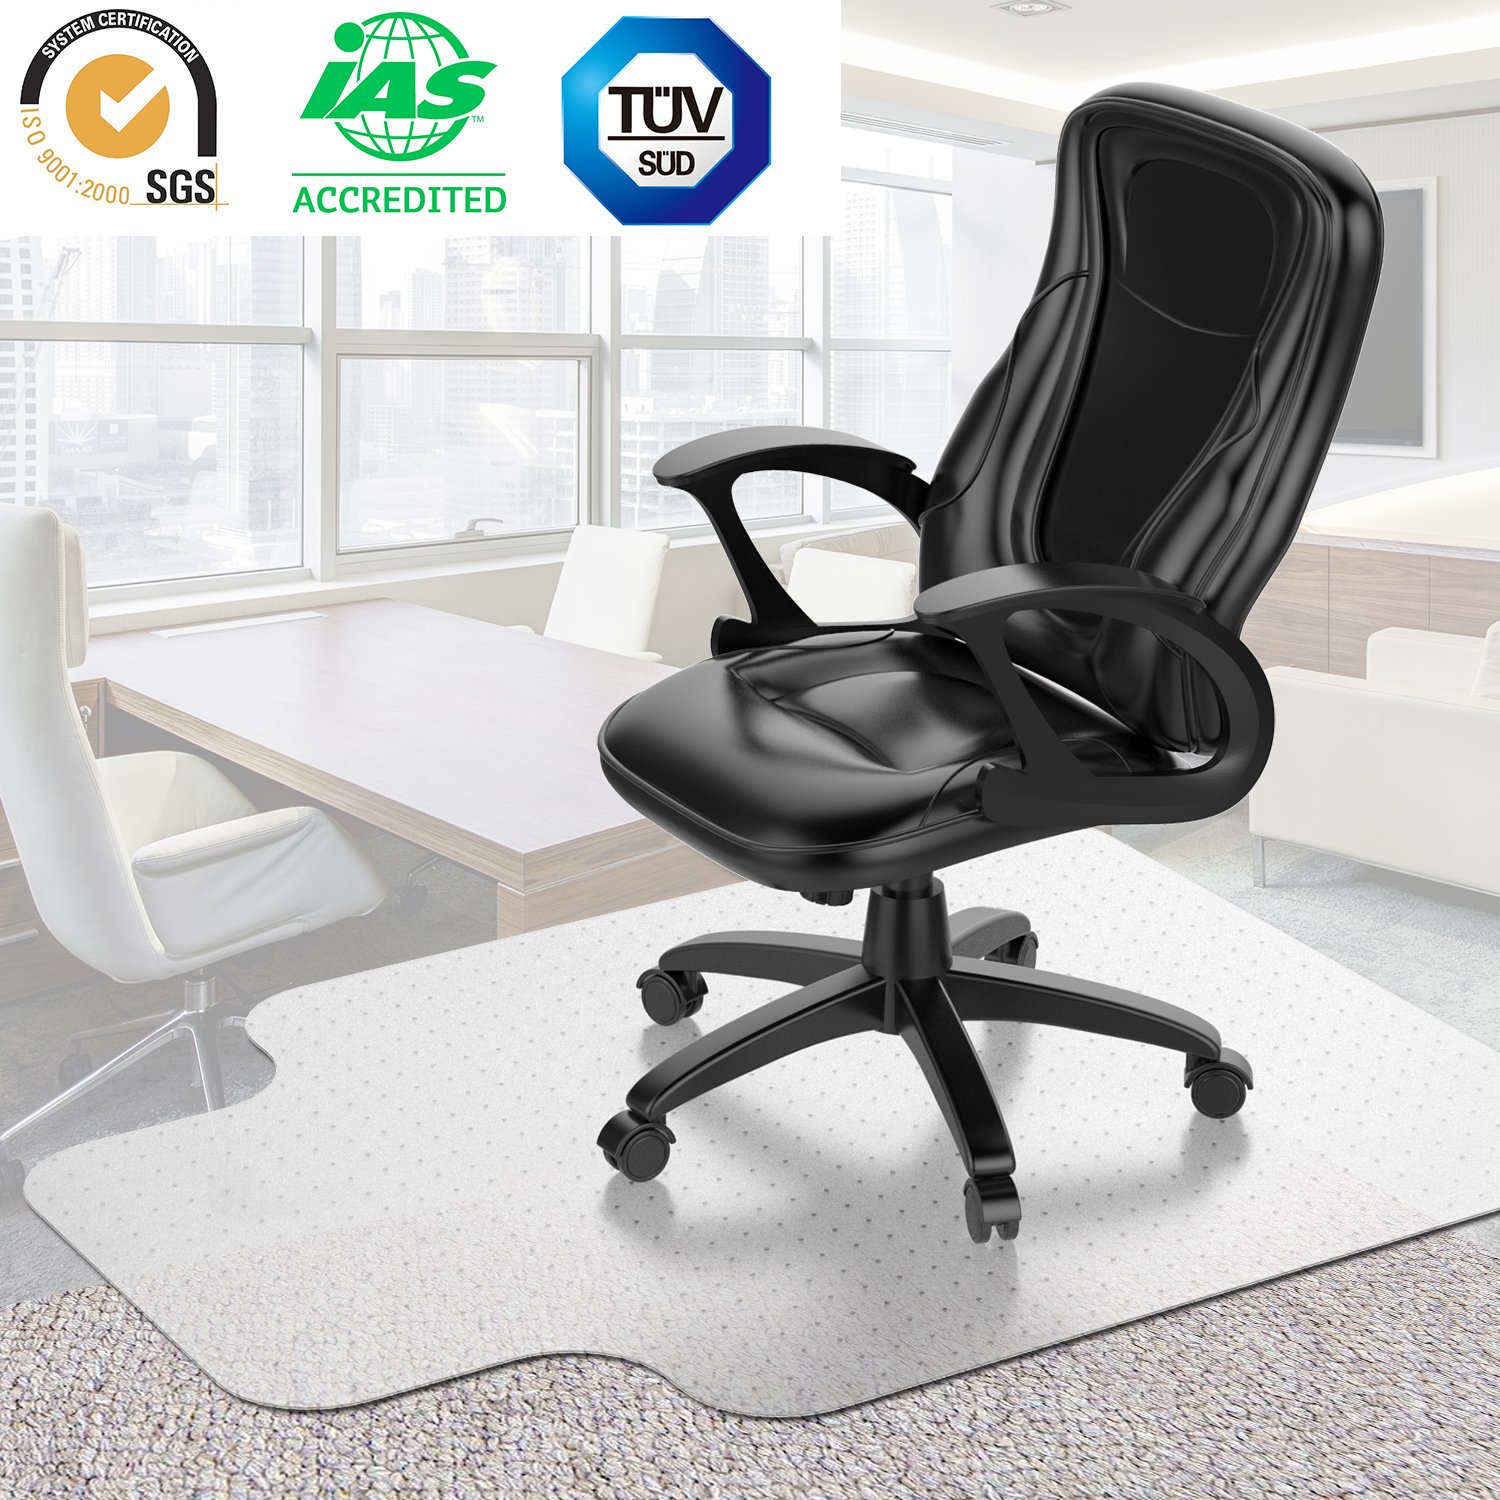 Desk Chair Mat for Carpet - Vinyl Floor Protector for Low-Pile Carpets,Non-Slip Bottom | Home, Office, Computer